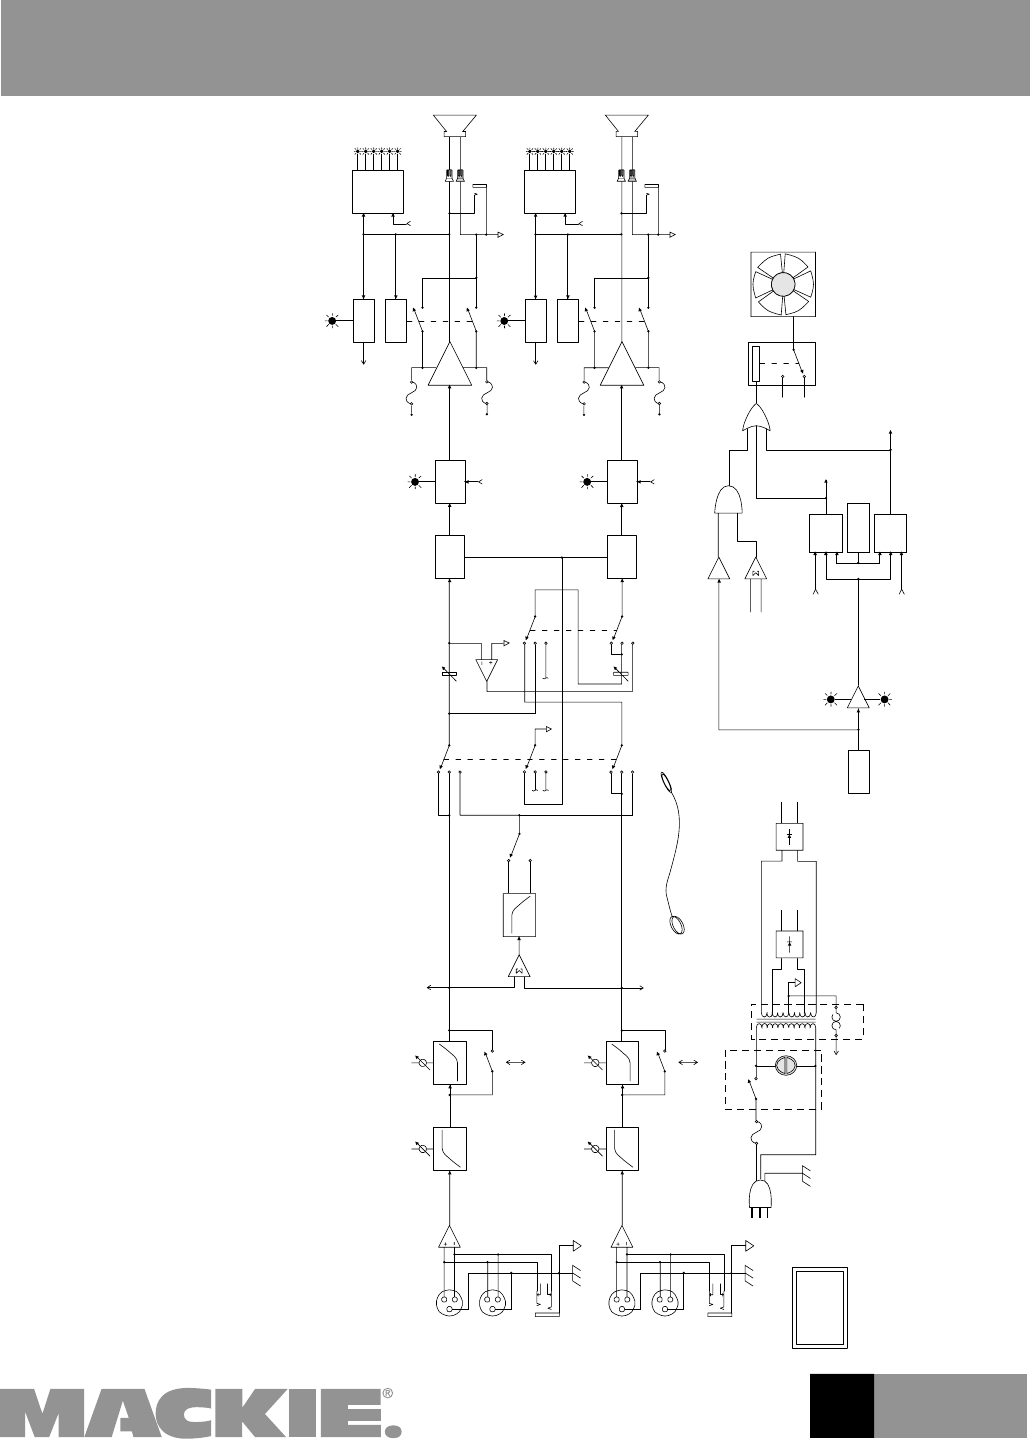 Page 4 of Mackie Stereo Amplifier M1400/M1400i User Guide